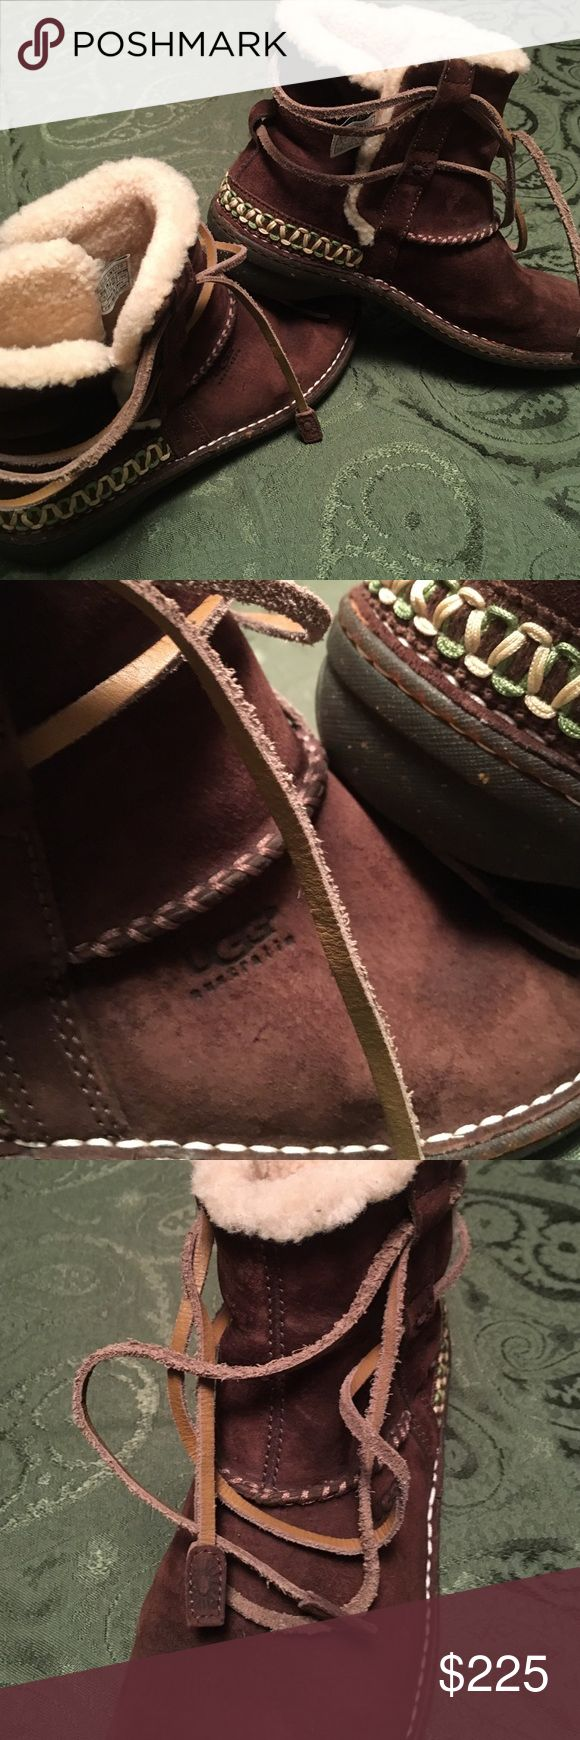 NWOT VINTAGE UGGS Never Seen This Style Before I Bought These Online From UGG - at least 20 years ago.       Need any up-close #s or photos- ask.        ✨🛍✨ UGG Shoes Lace Up Boots